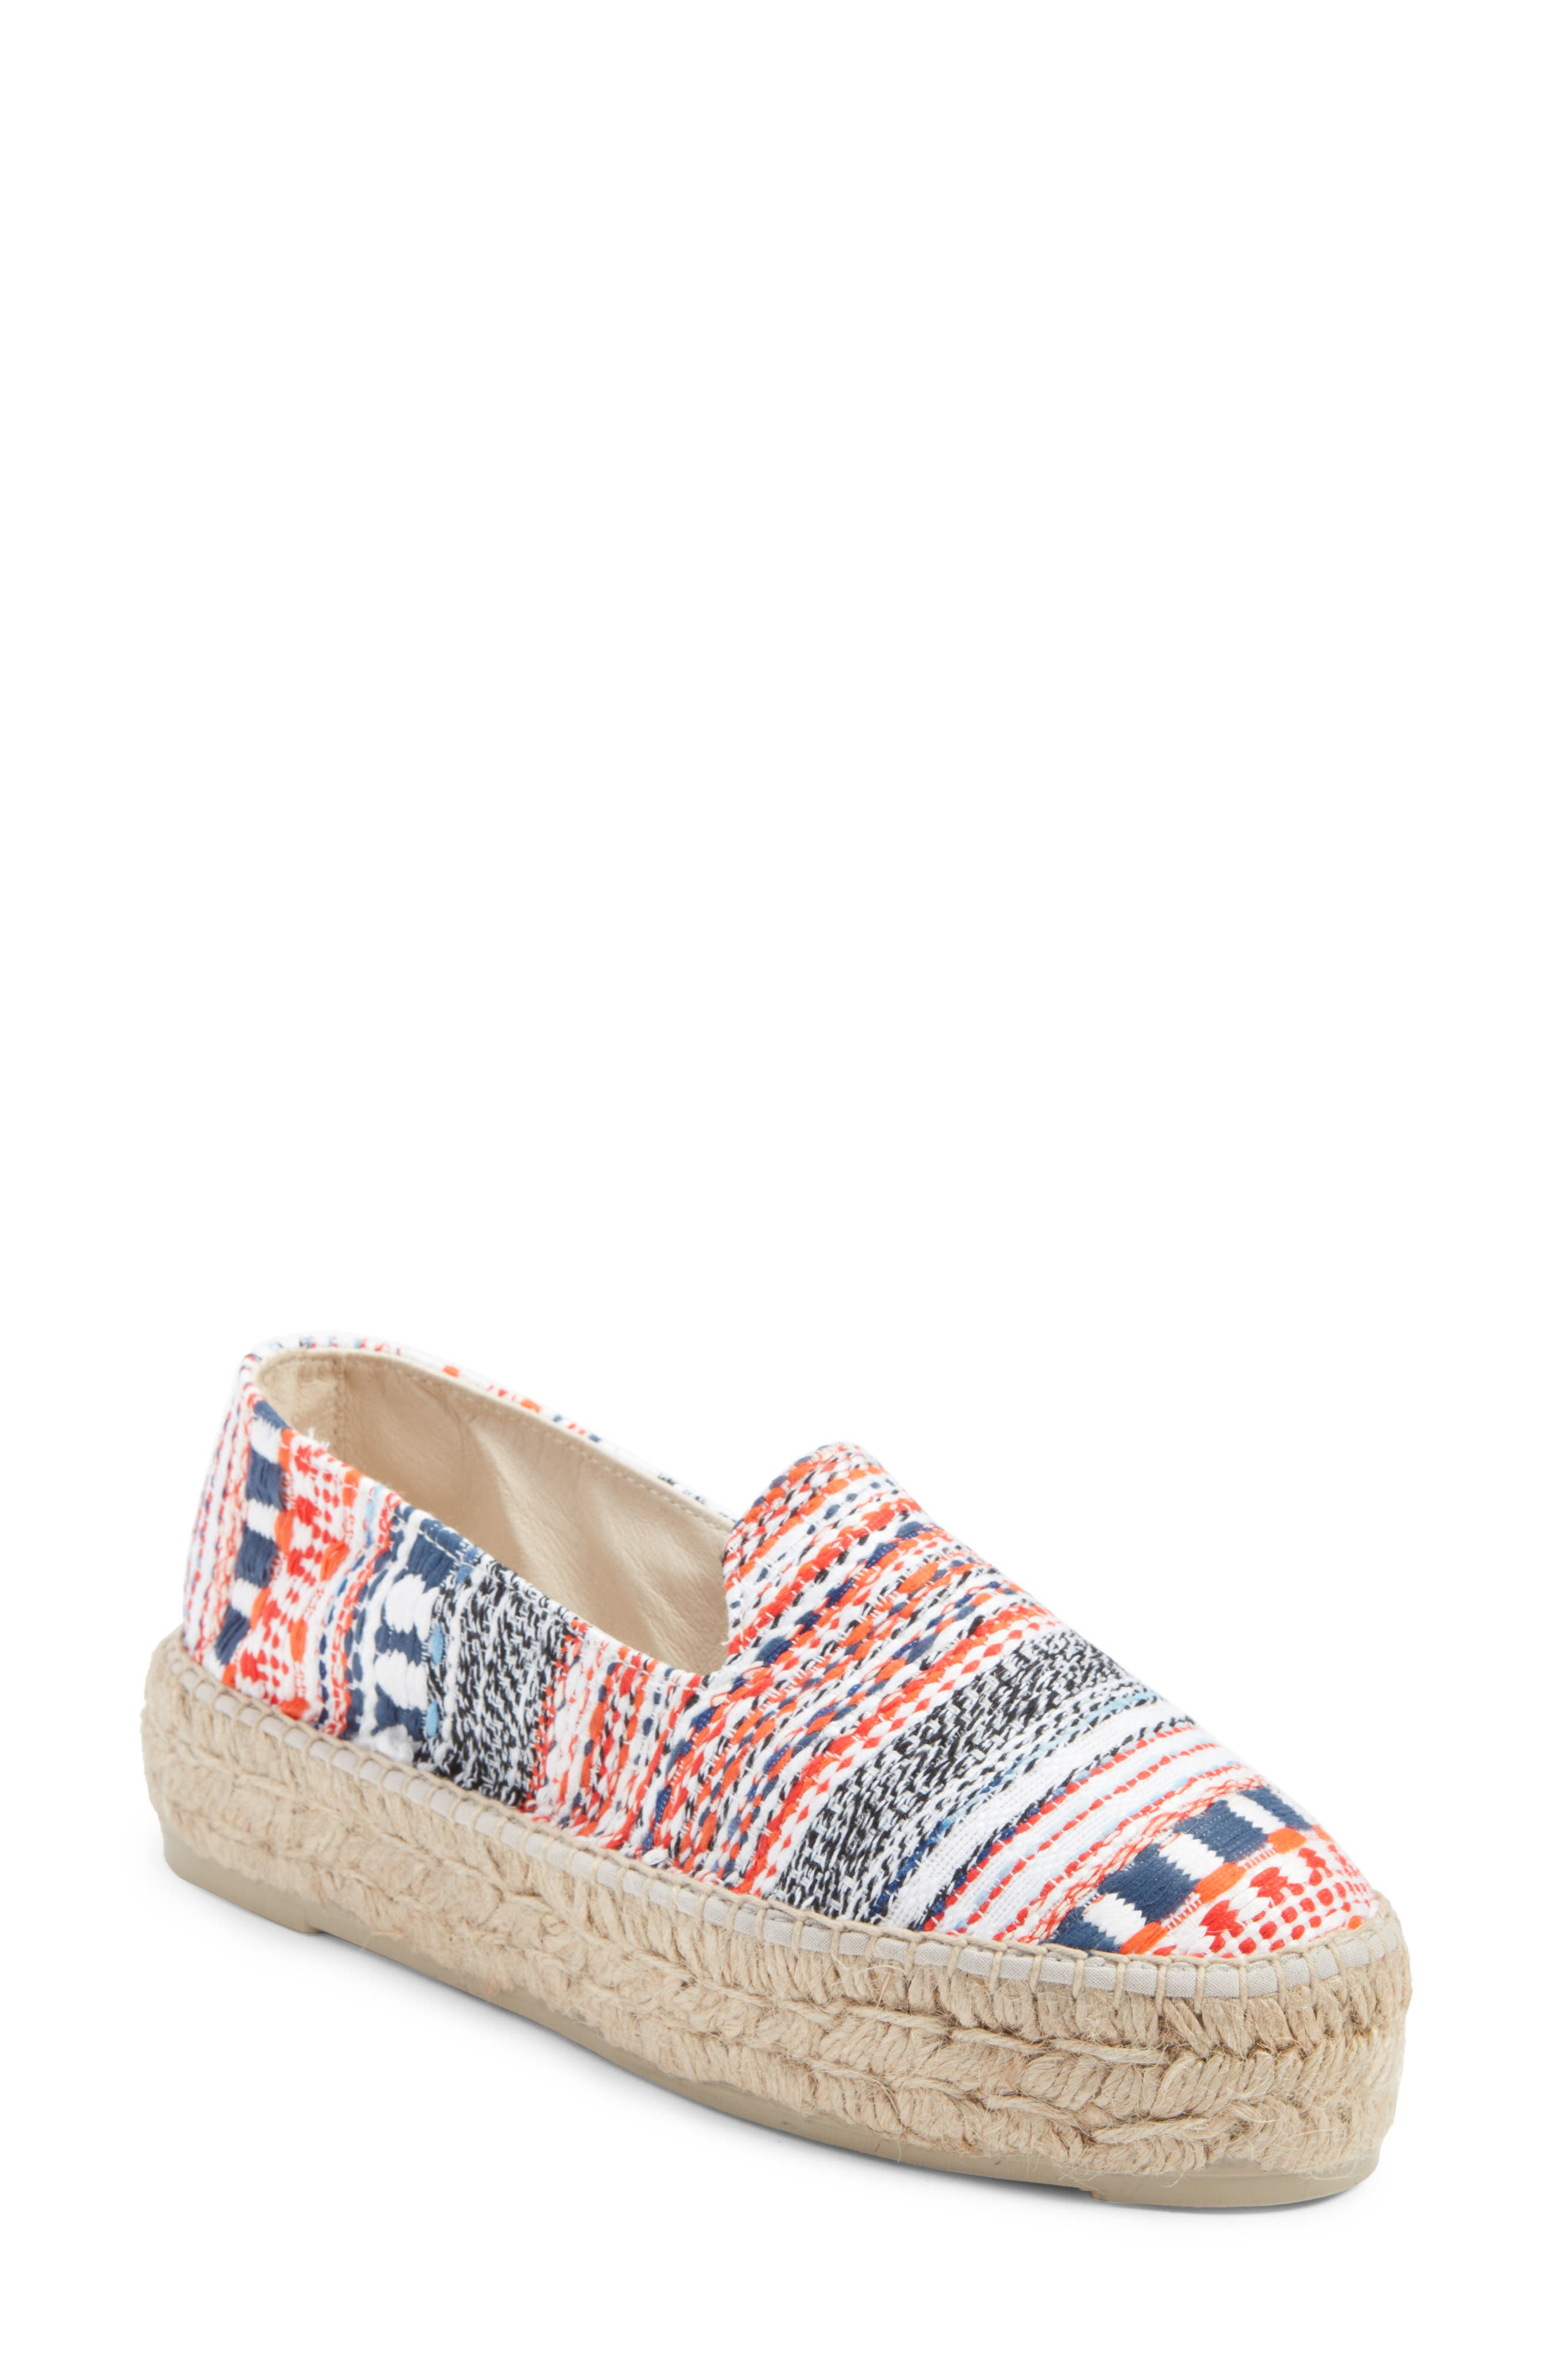 MANEBÍ Yucatan Platform Espadrille Slip-On,                         Main,                         color, 420